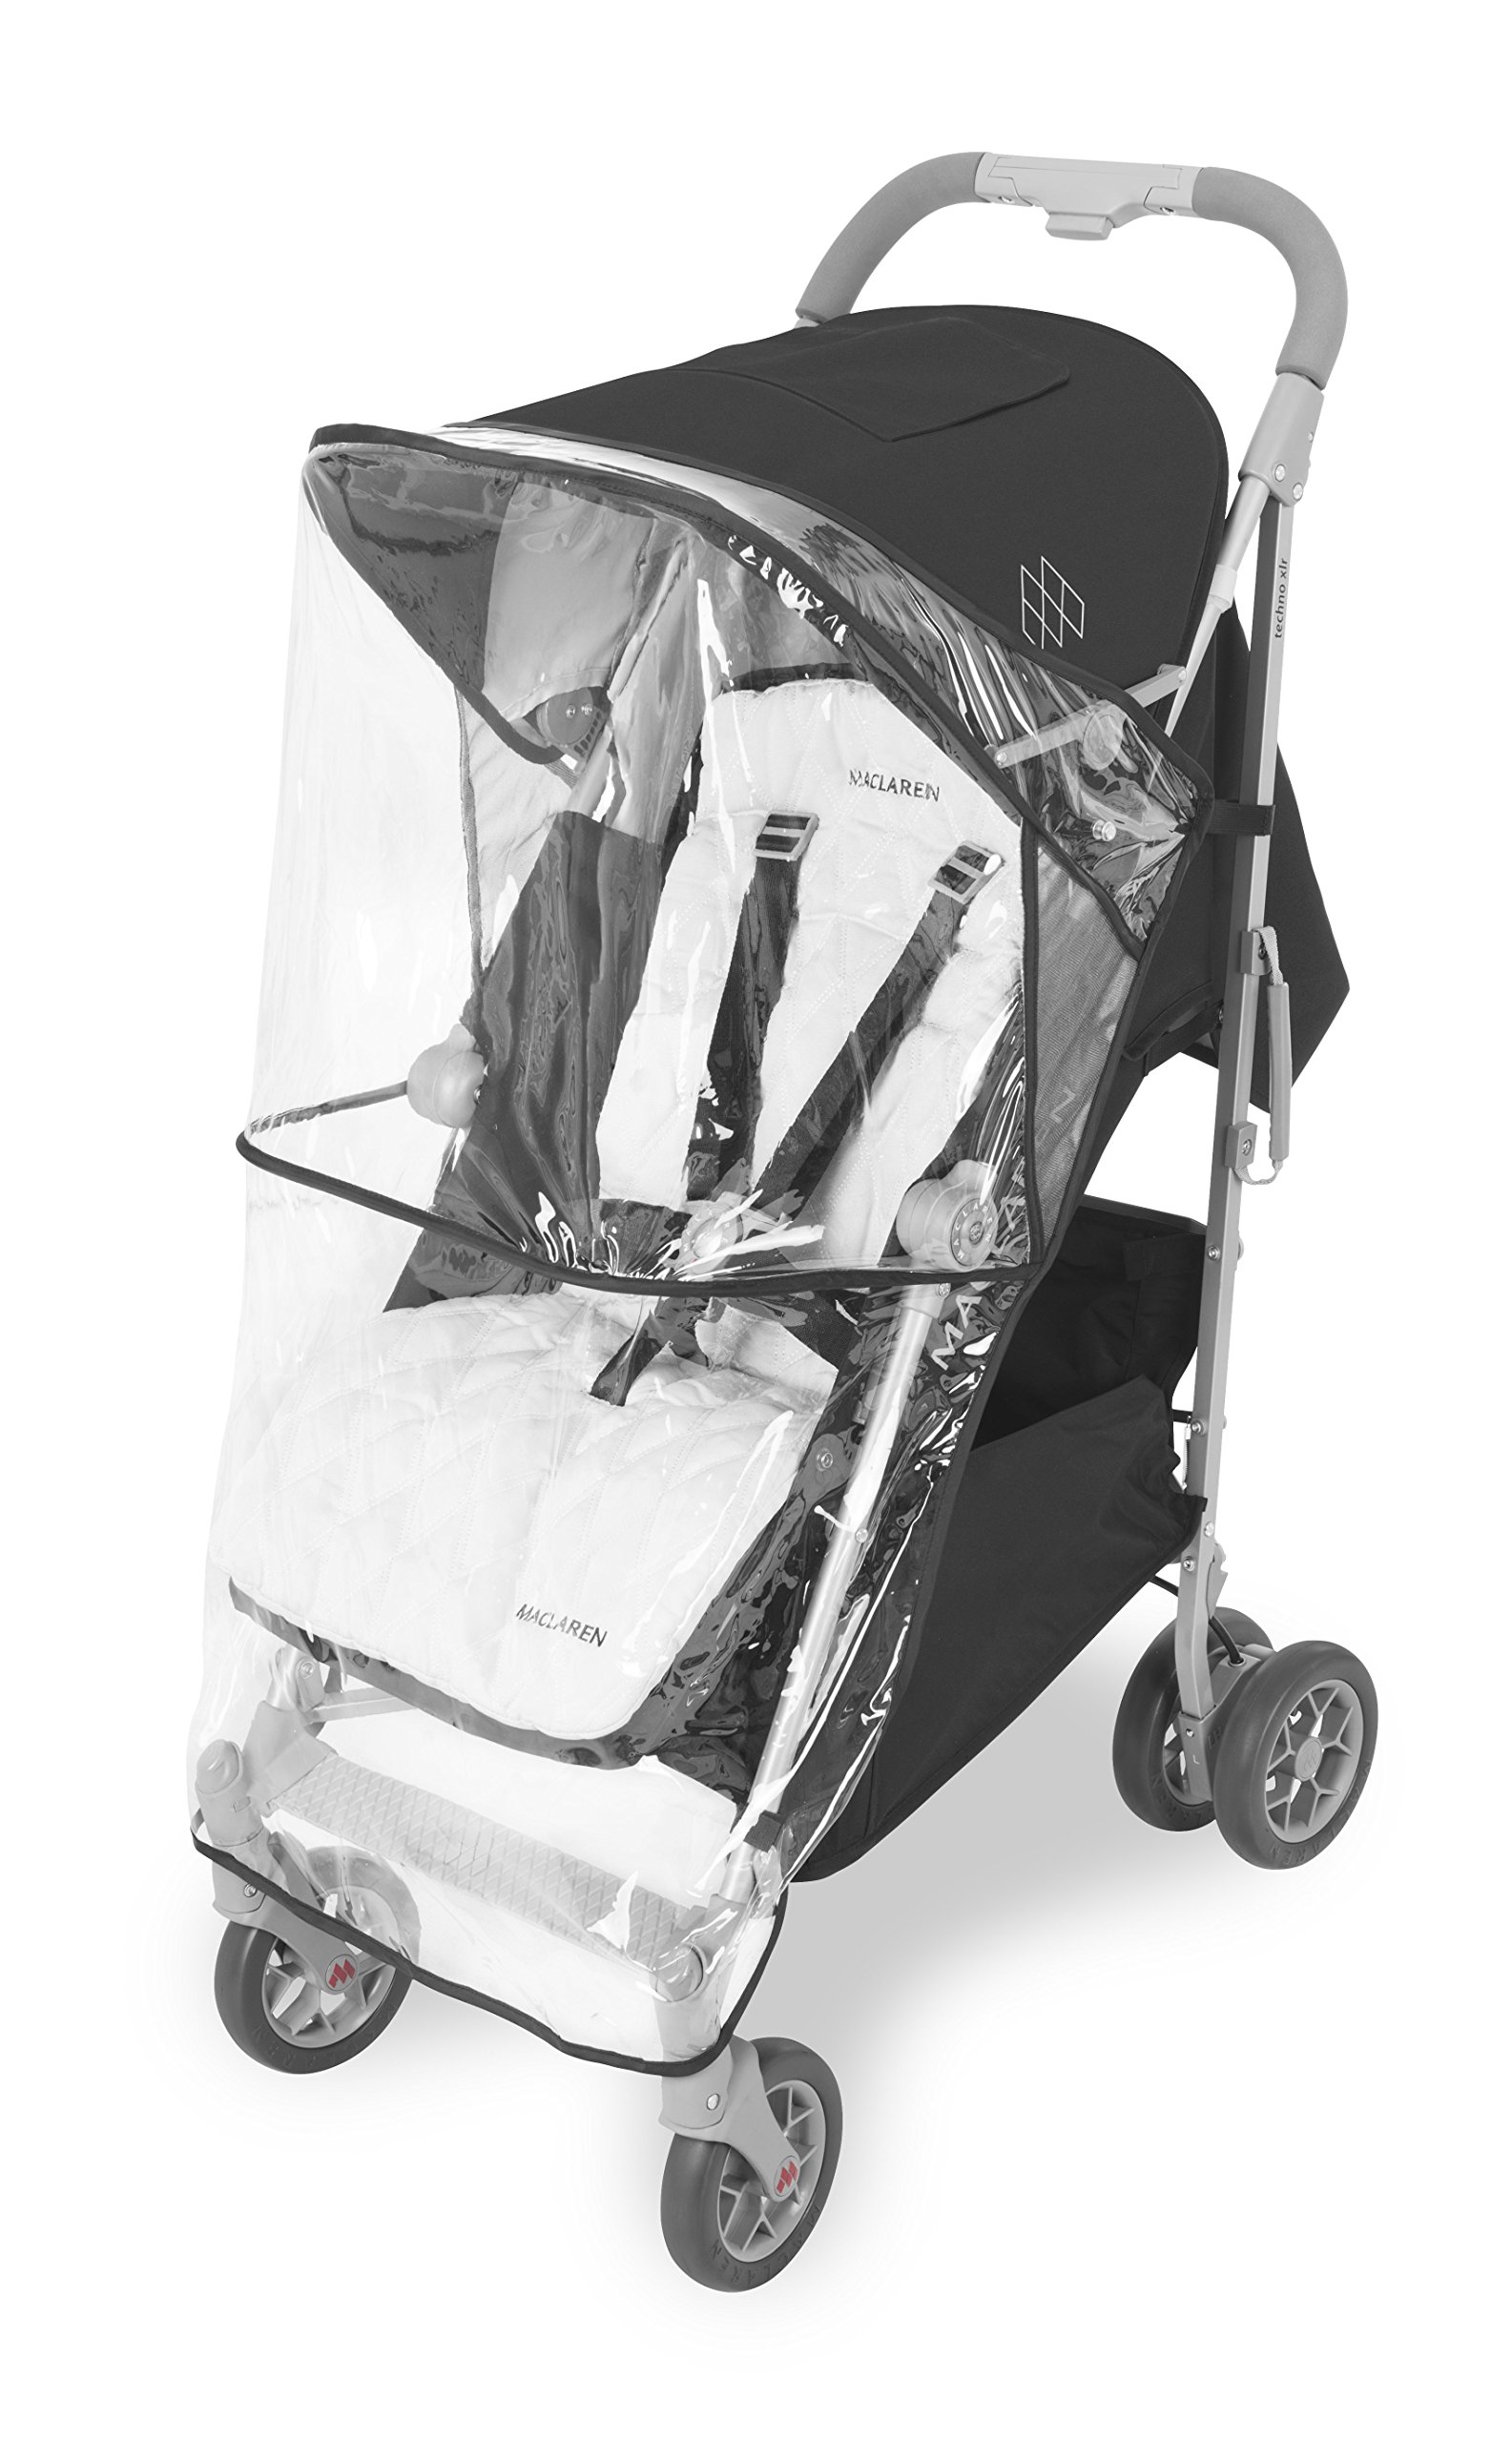 Maclaren Techno XLR arc Travel System Stroller Maclaren Basic weight of 6.7kg/14.8lb; ideal for new-borns and children up to 25kg/55lb (usa 65lb) Maclaren is the only brand to offer a sovereign lifetime warranty Extendable upf 50+ sun canopy and built-in sun visor 7